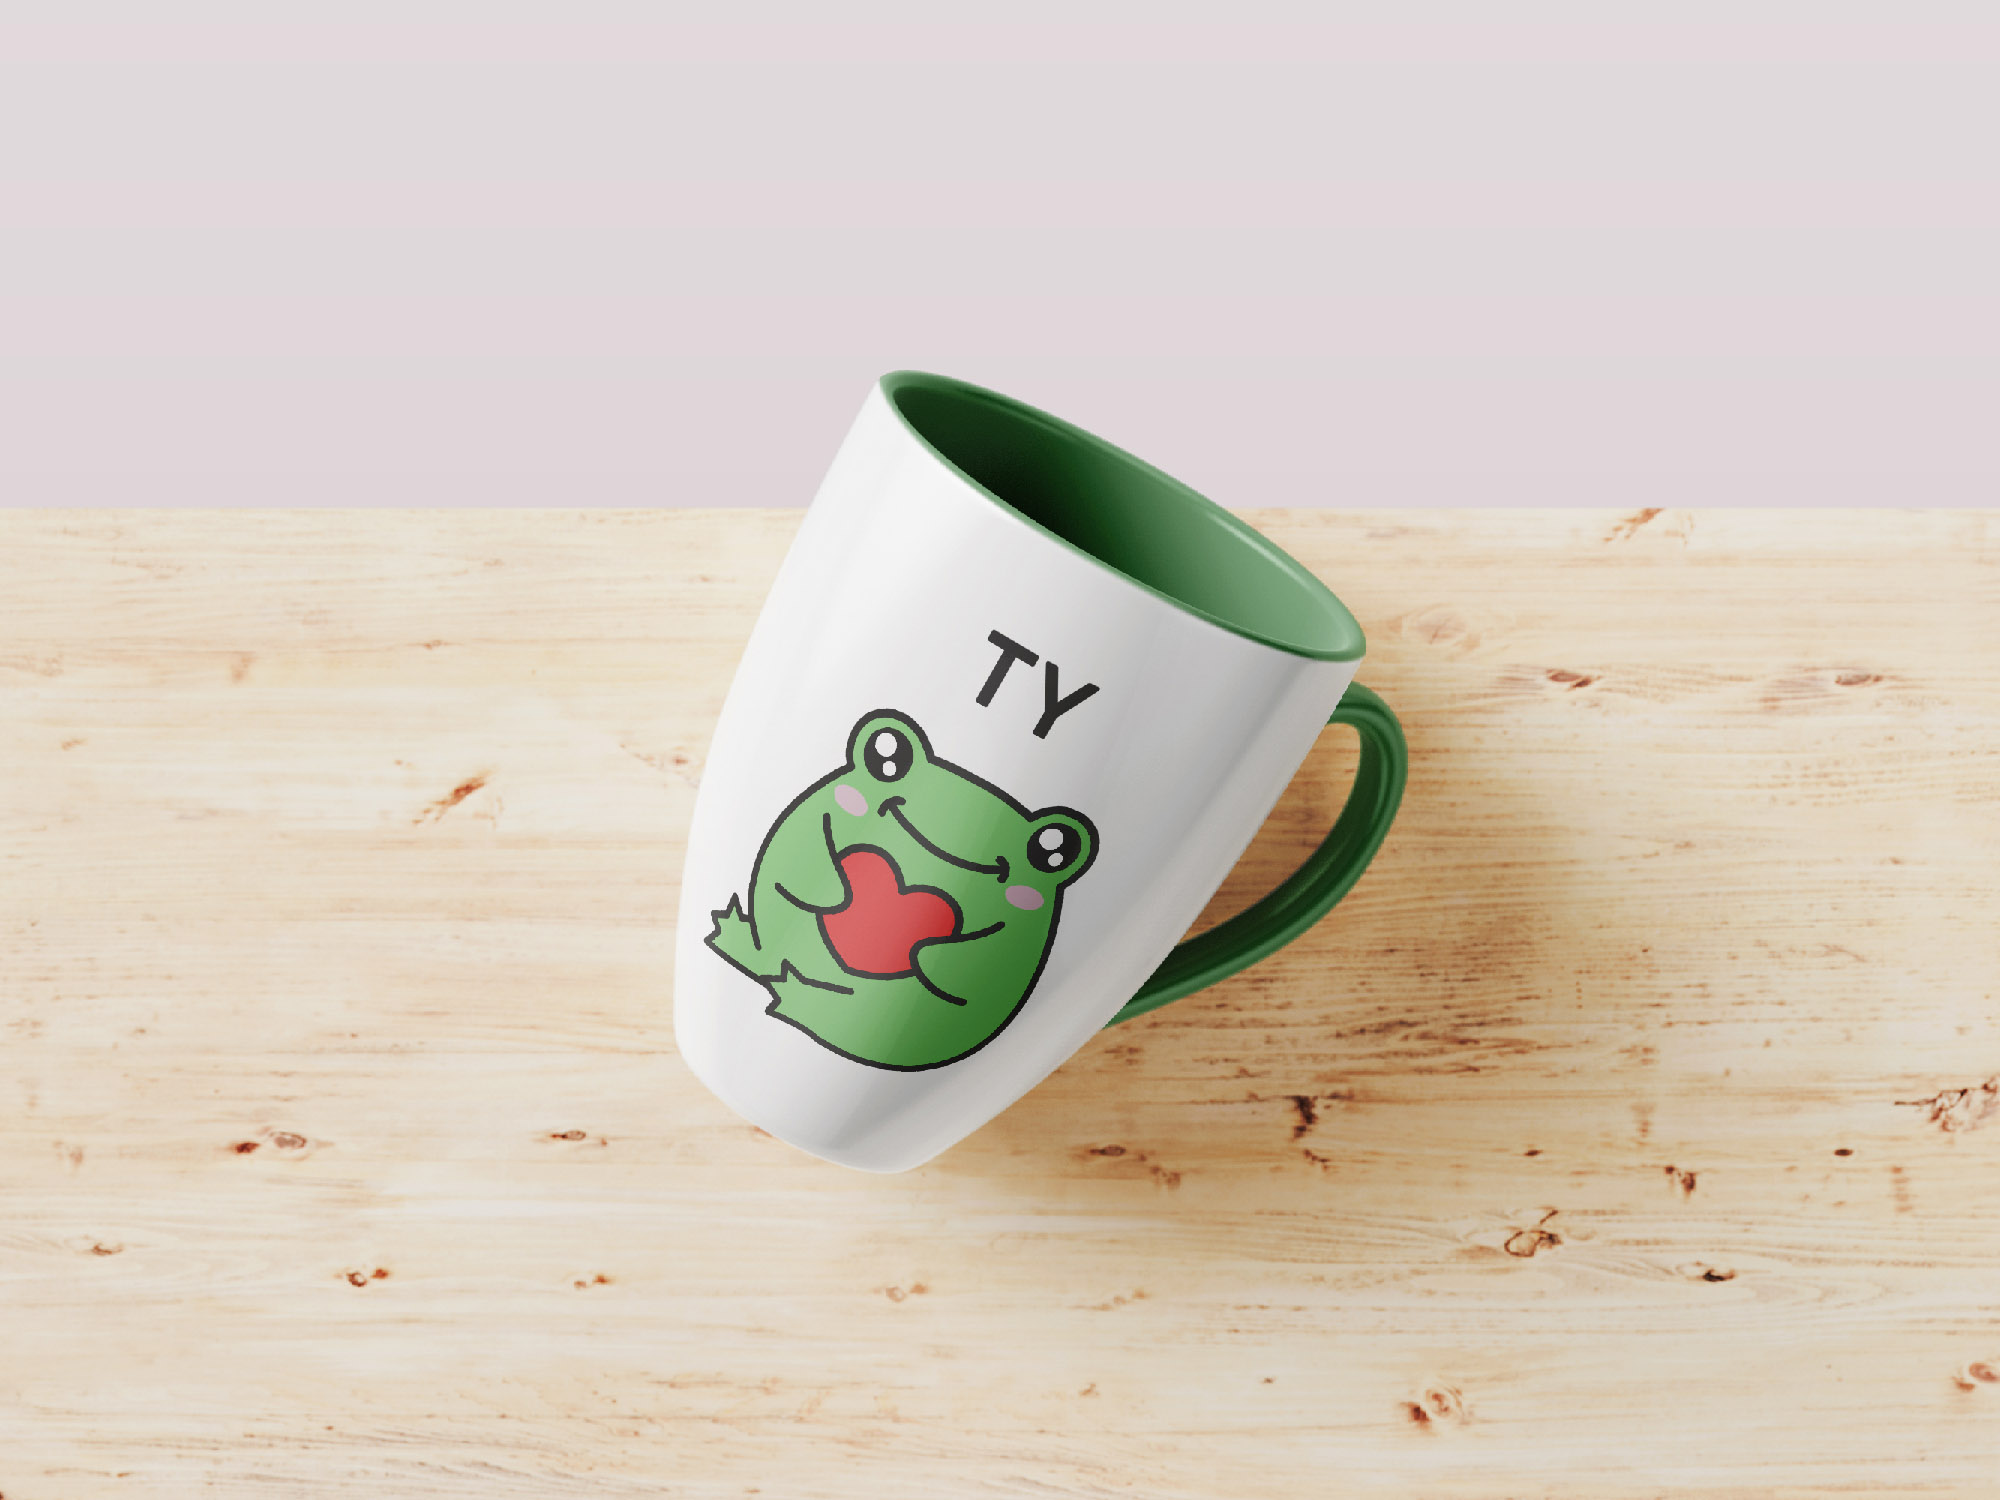 frog stickers previews cup mockup.